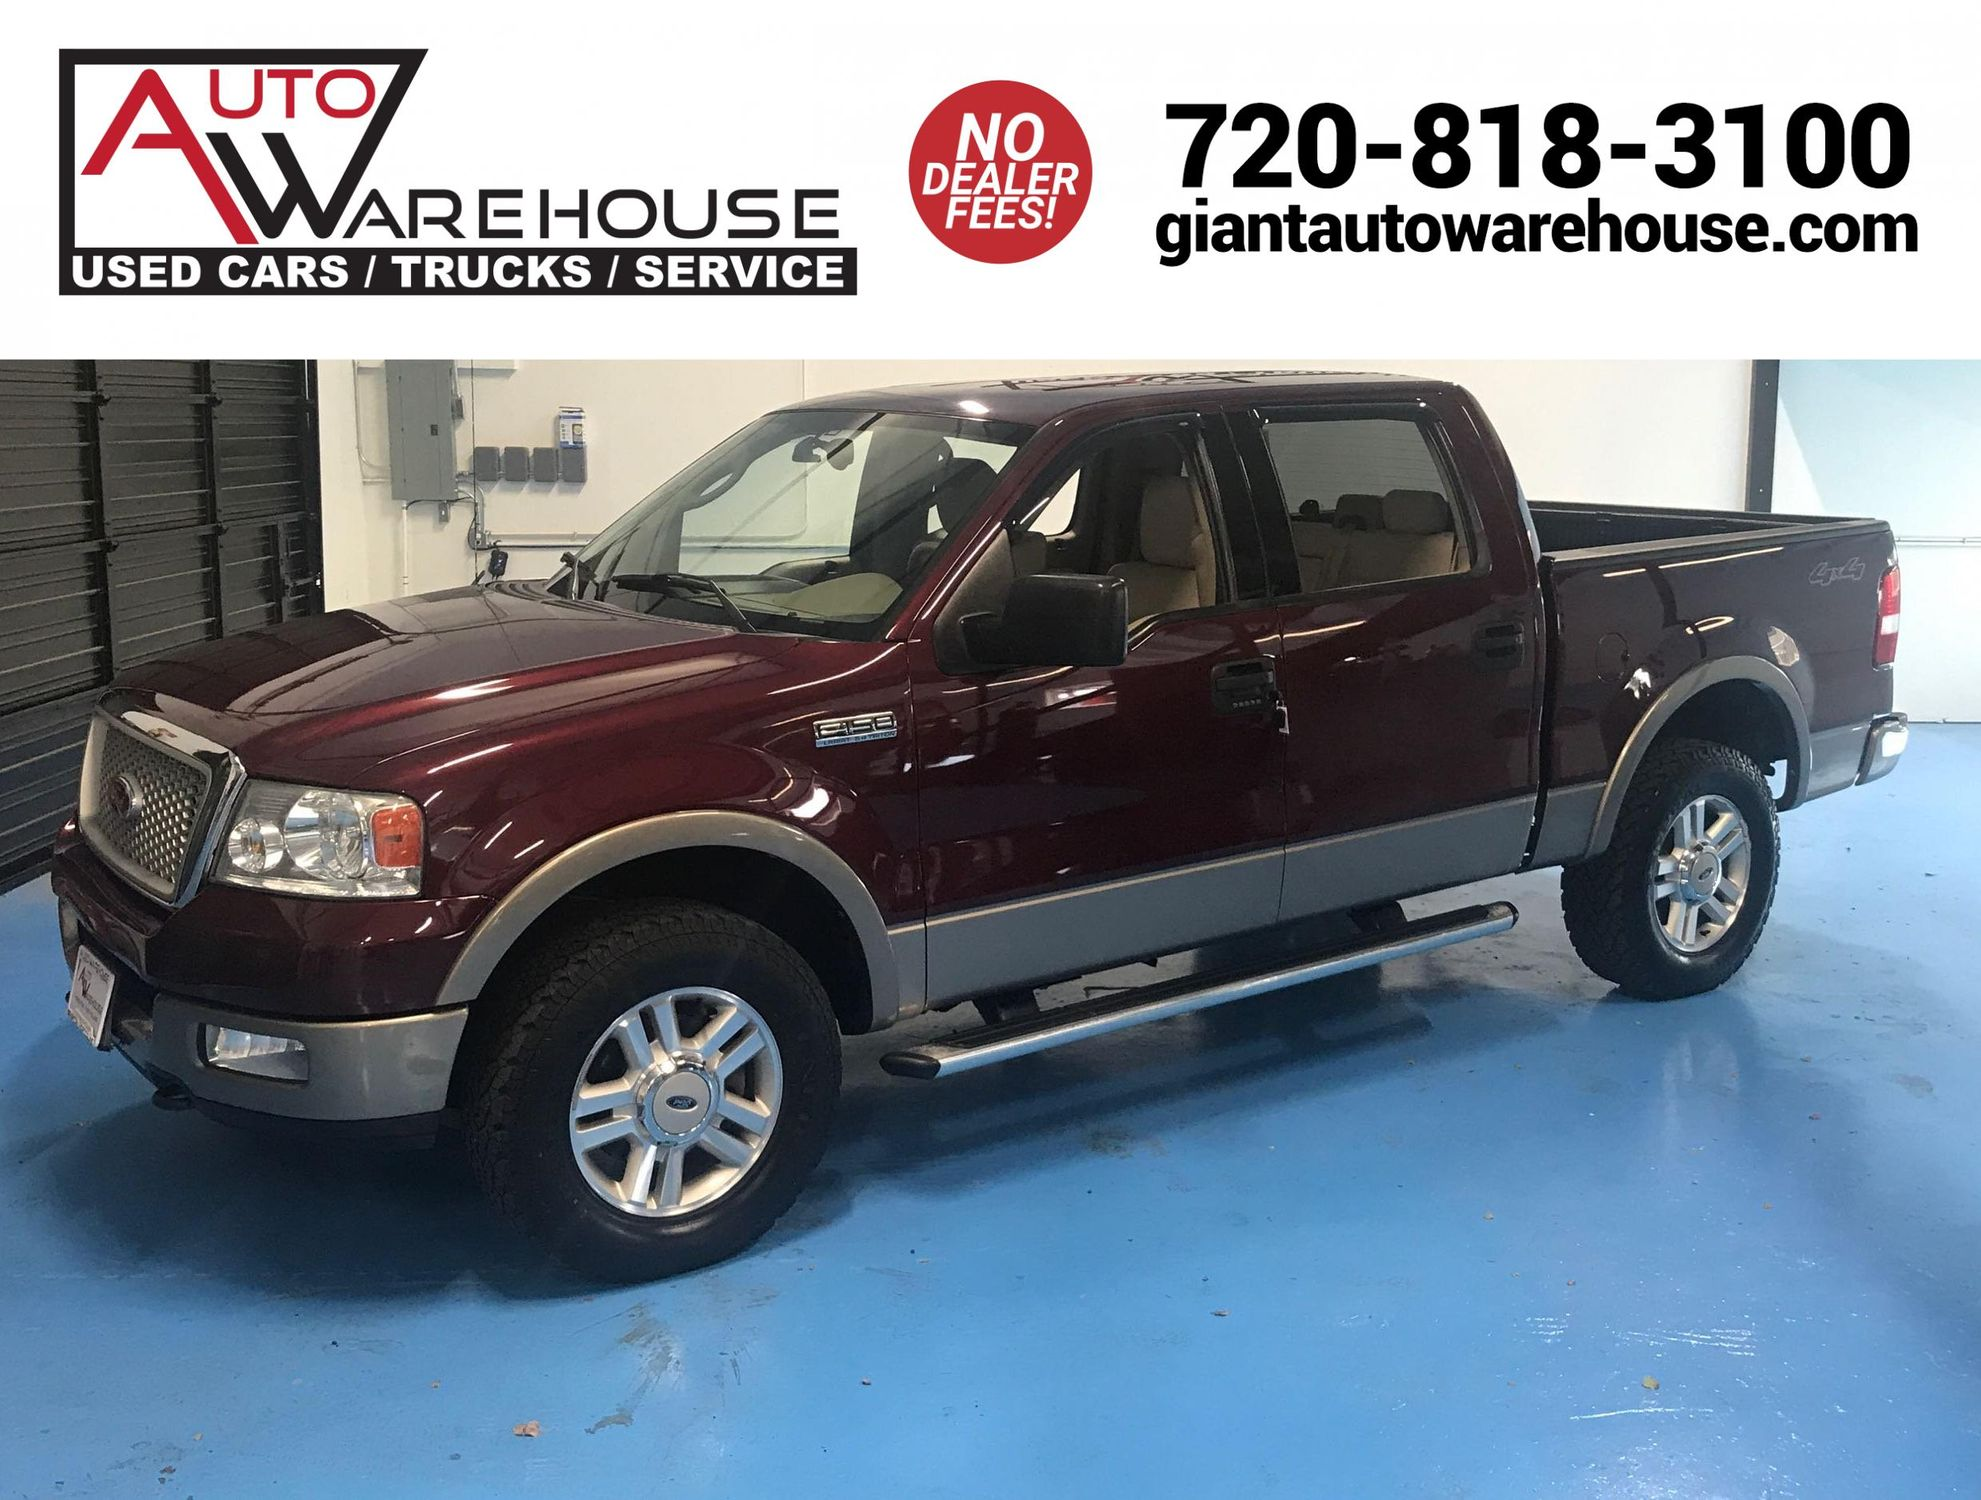 2004 Ford F150 Lariat >> 2004 Ford F 150 Lariat Auto Warehouse